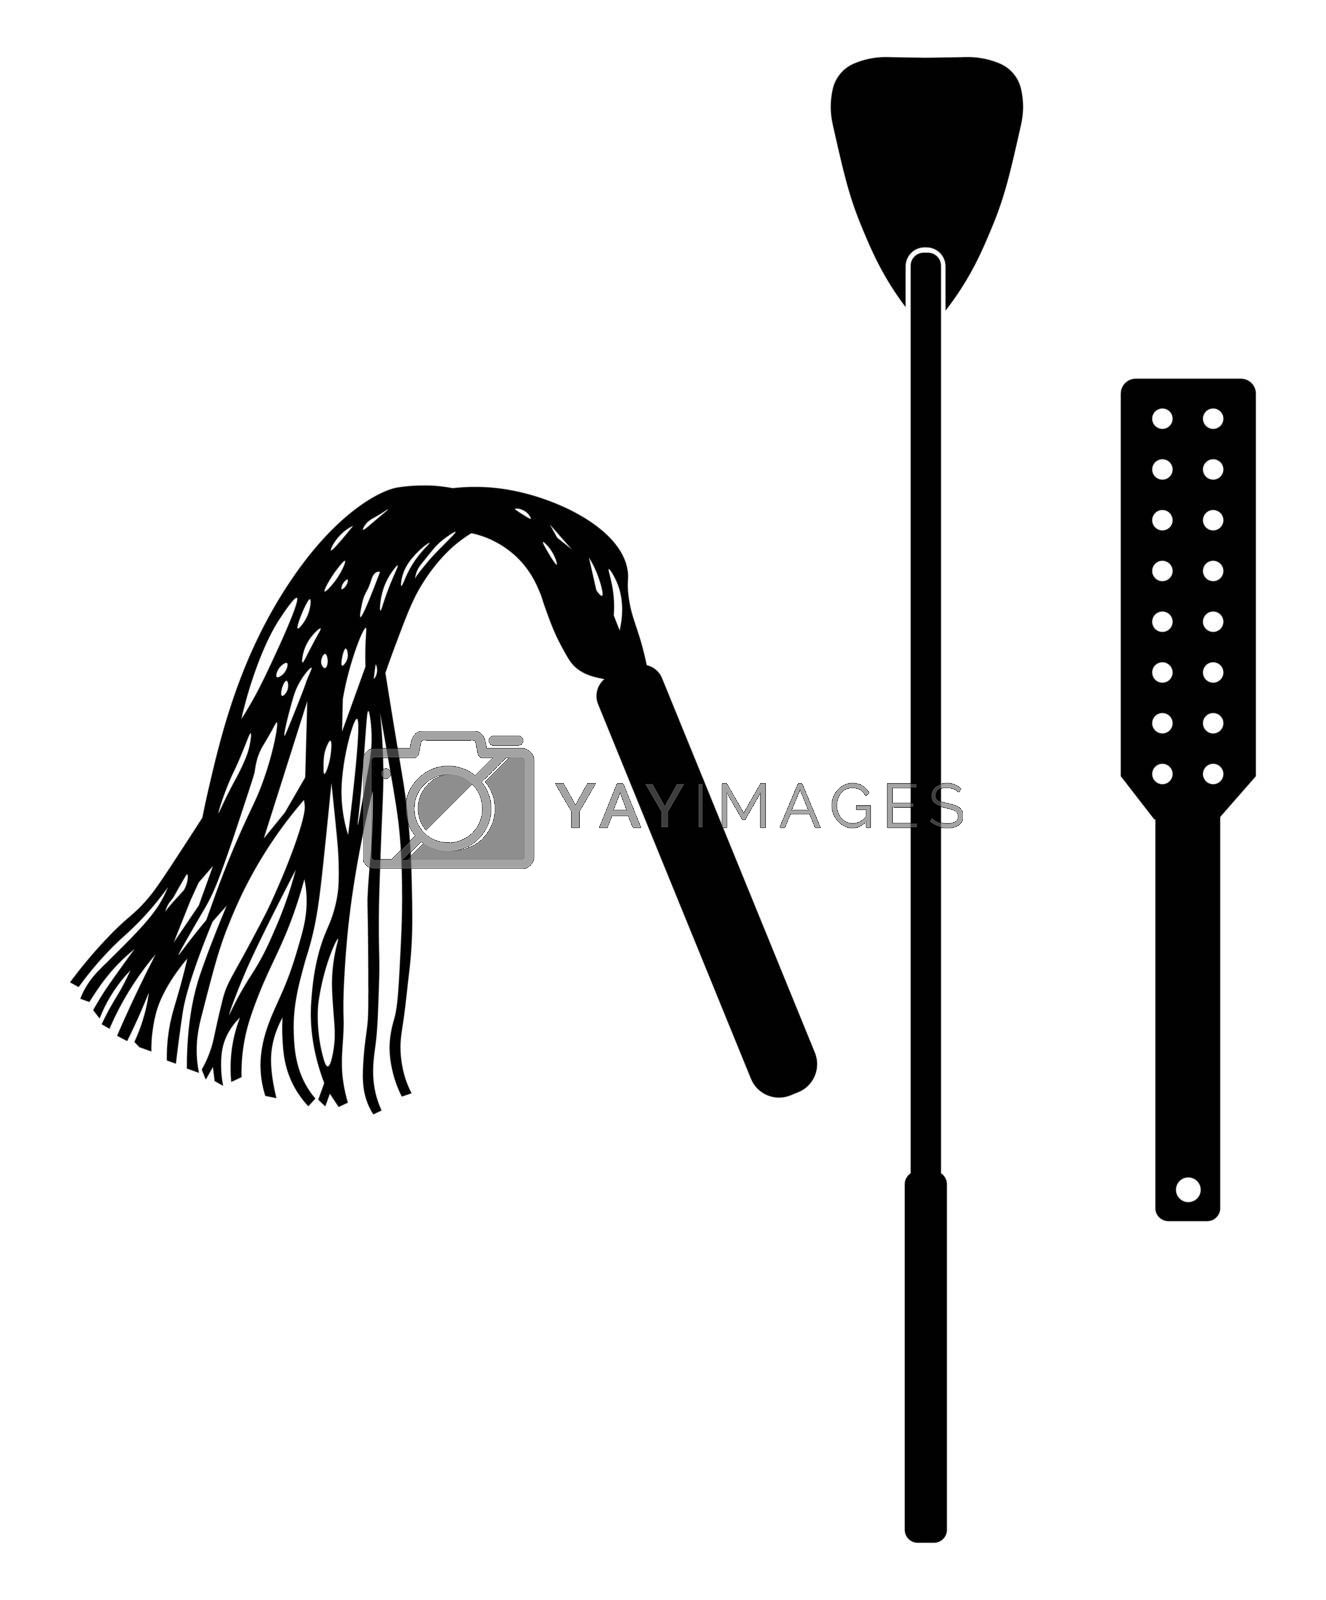 Spanking accessory. Accessory tool toy for BDSM. Isolated on white vector illustration